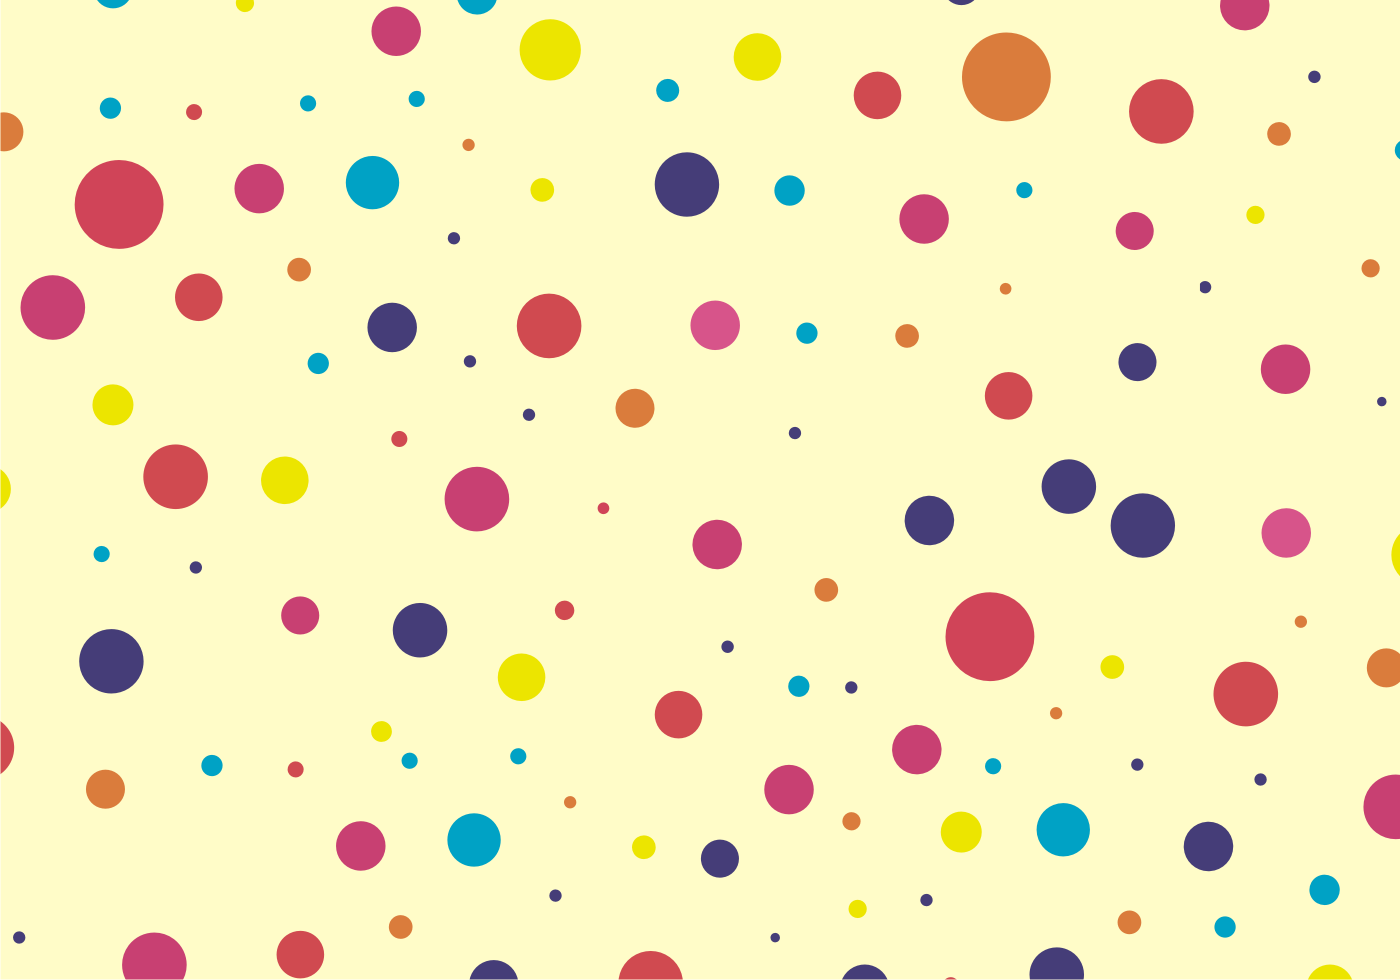 colorful dots patterns vector - photo #4